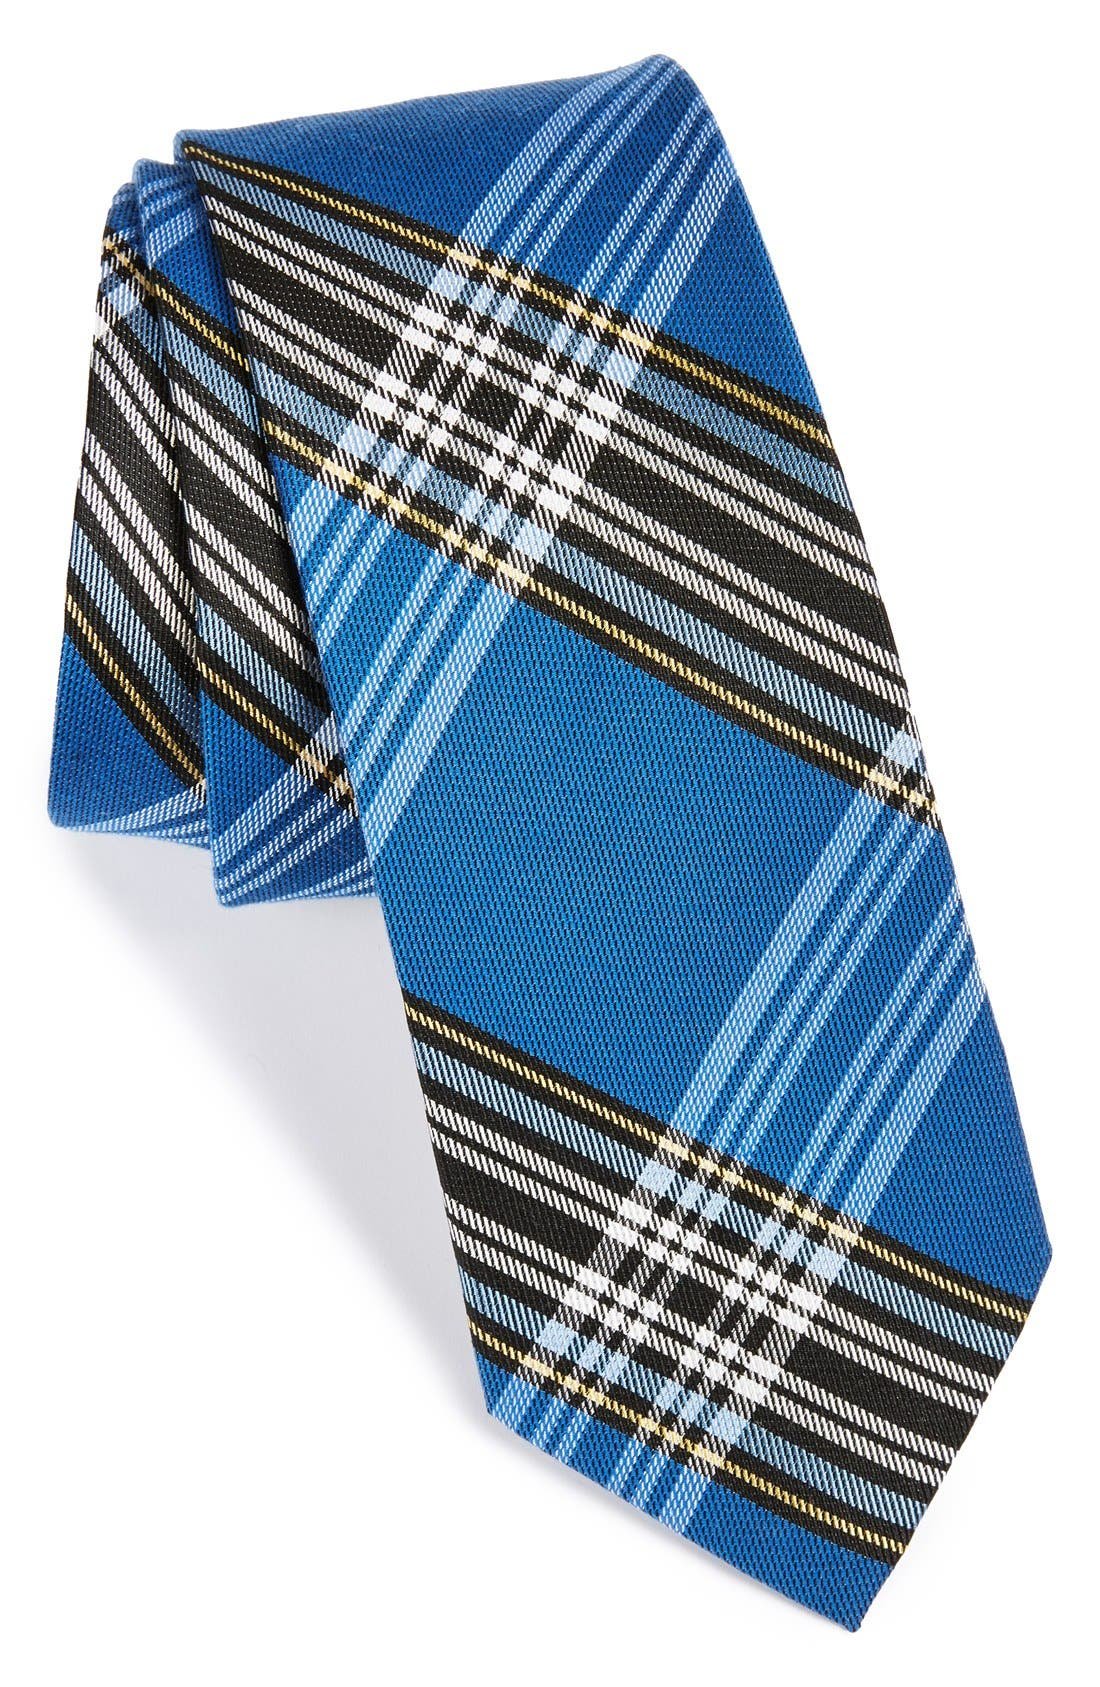 Main Image - 1901 'Delores' Plaid Silk & Cotton Tie